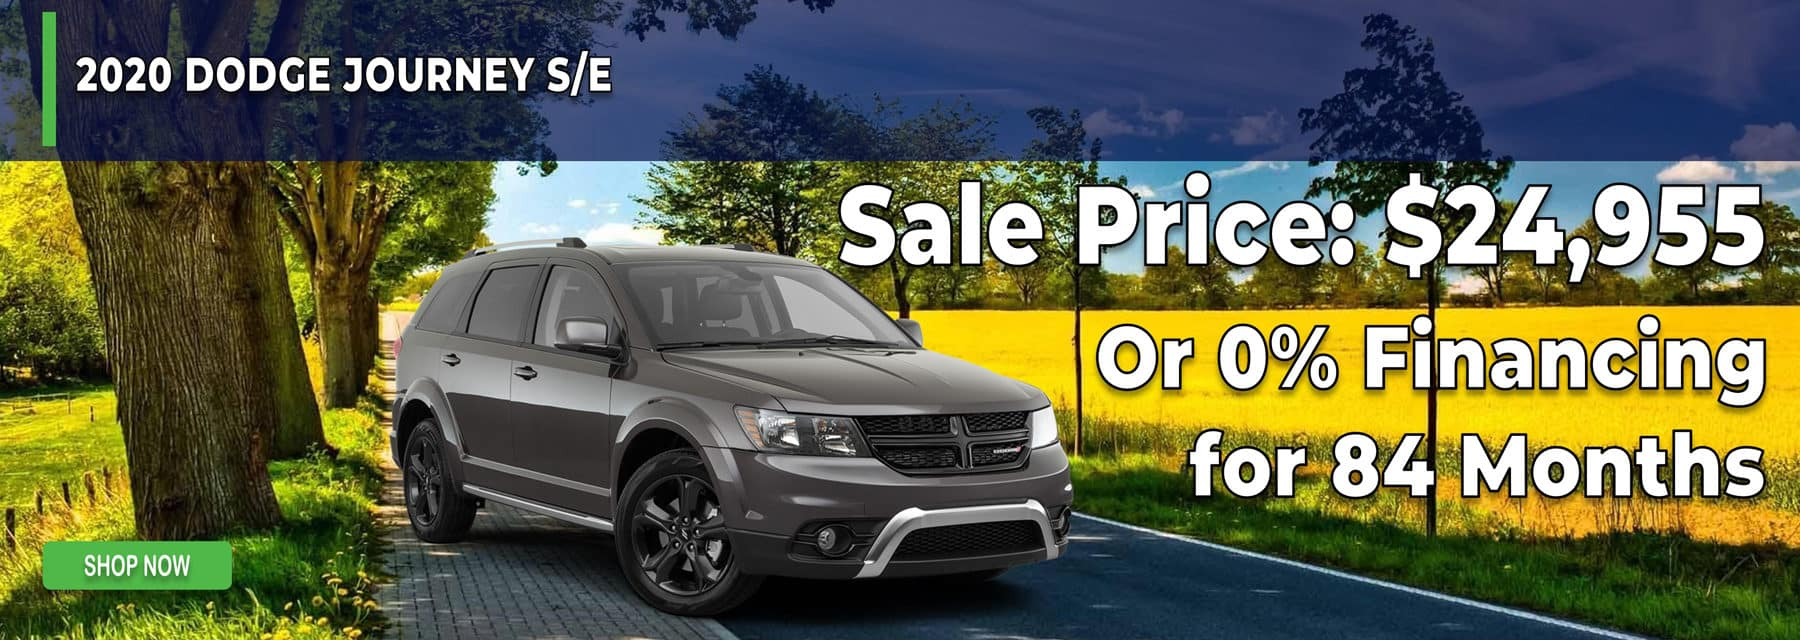 0% Financing for 84 months on Dodge Journey in Mukwonago Wisconsin